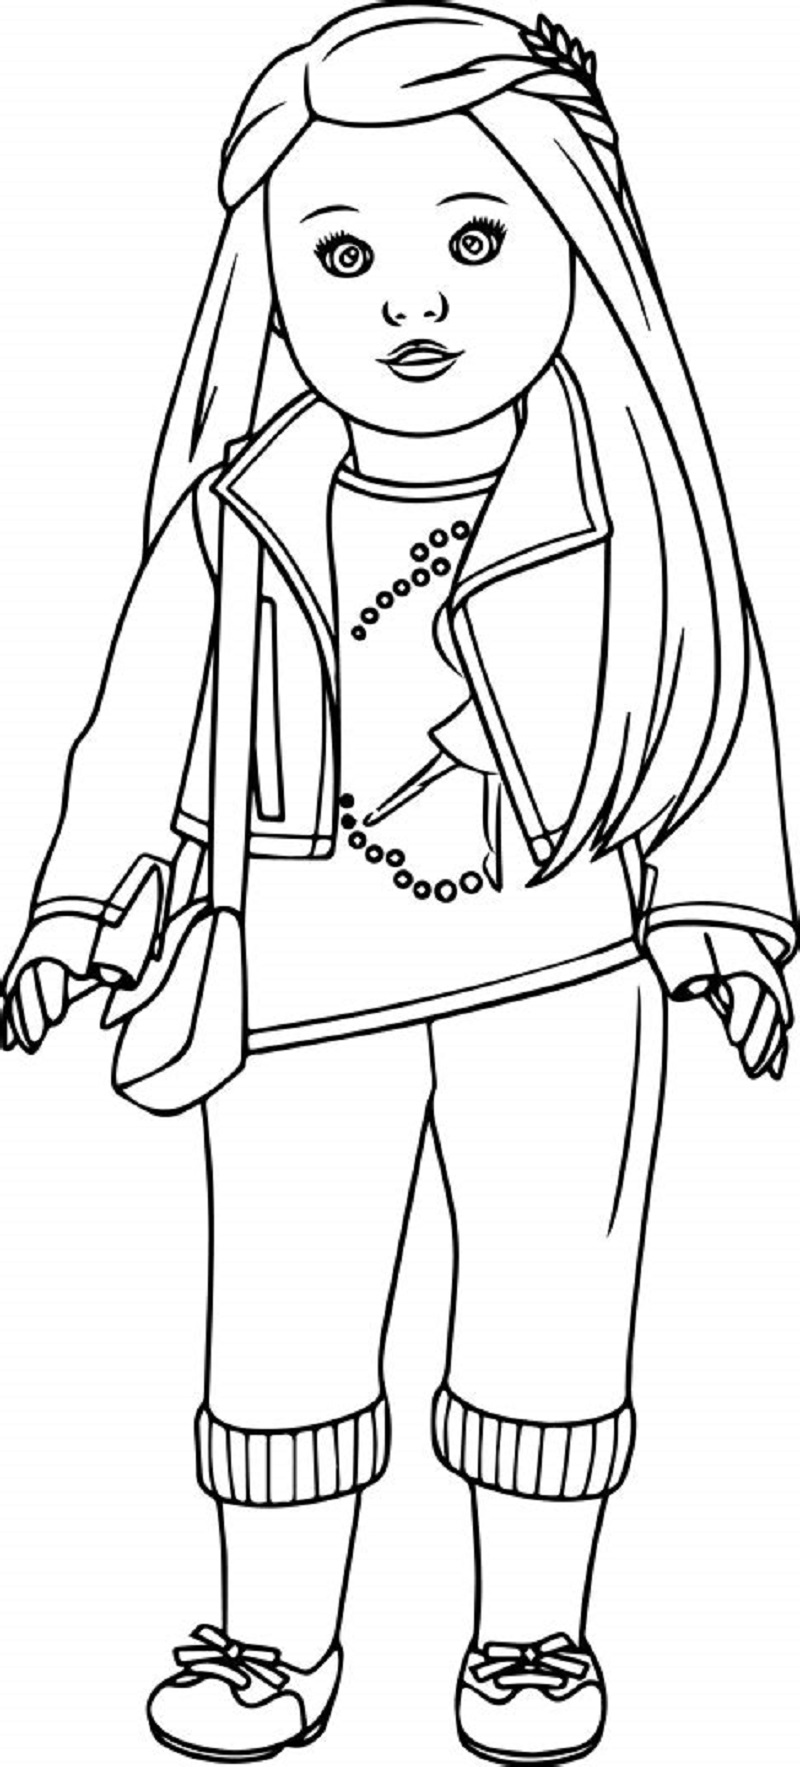 american girl doll coloring pages to print american girl coloring pages best coloring pages for kids american pages doll to print girl coloring